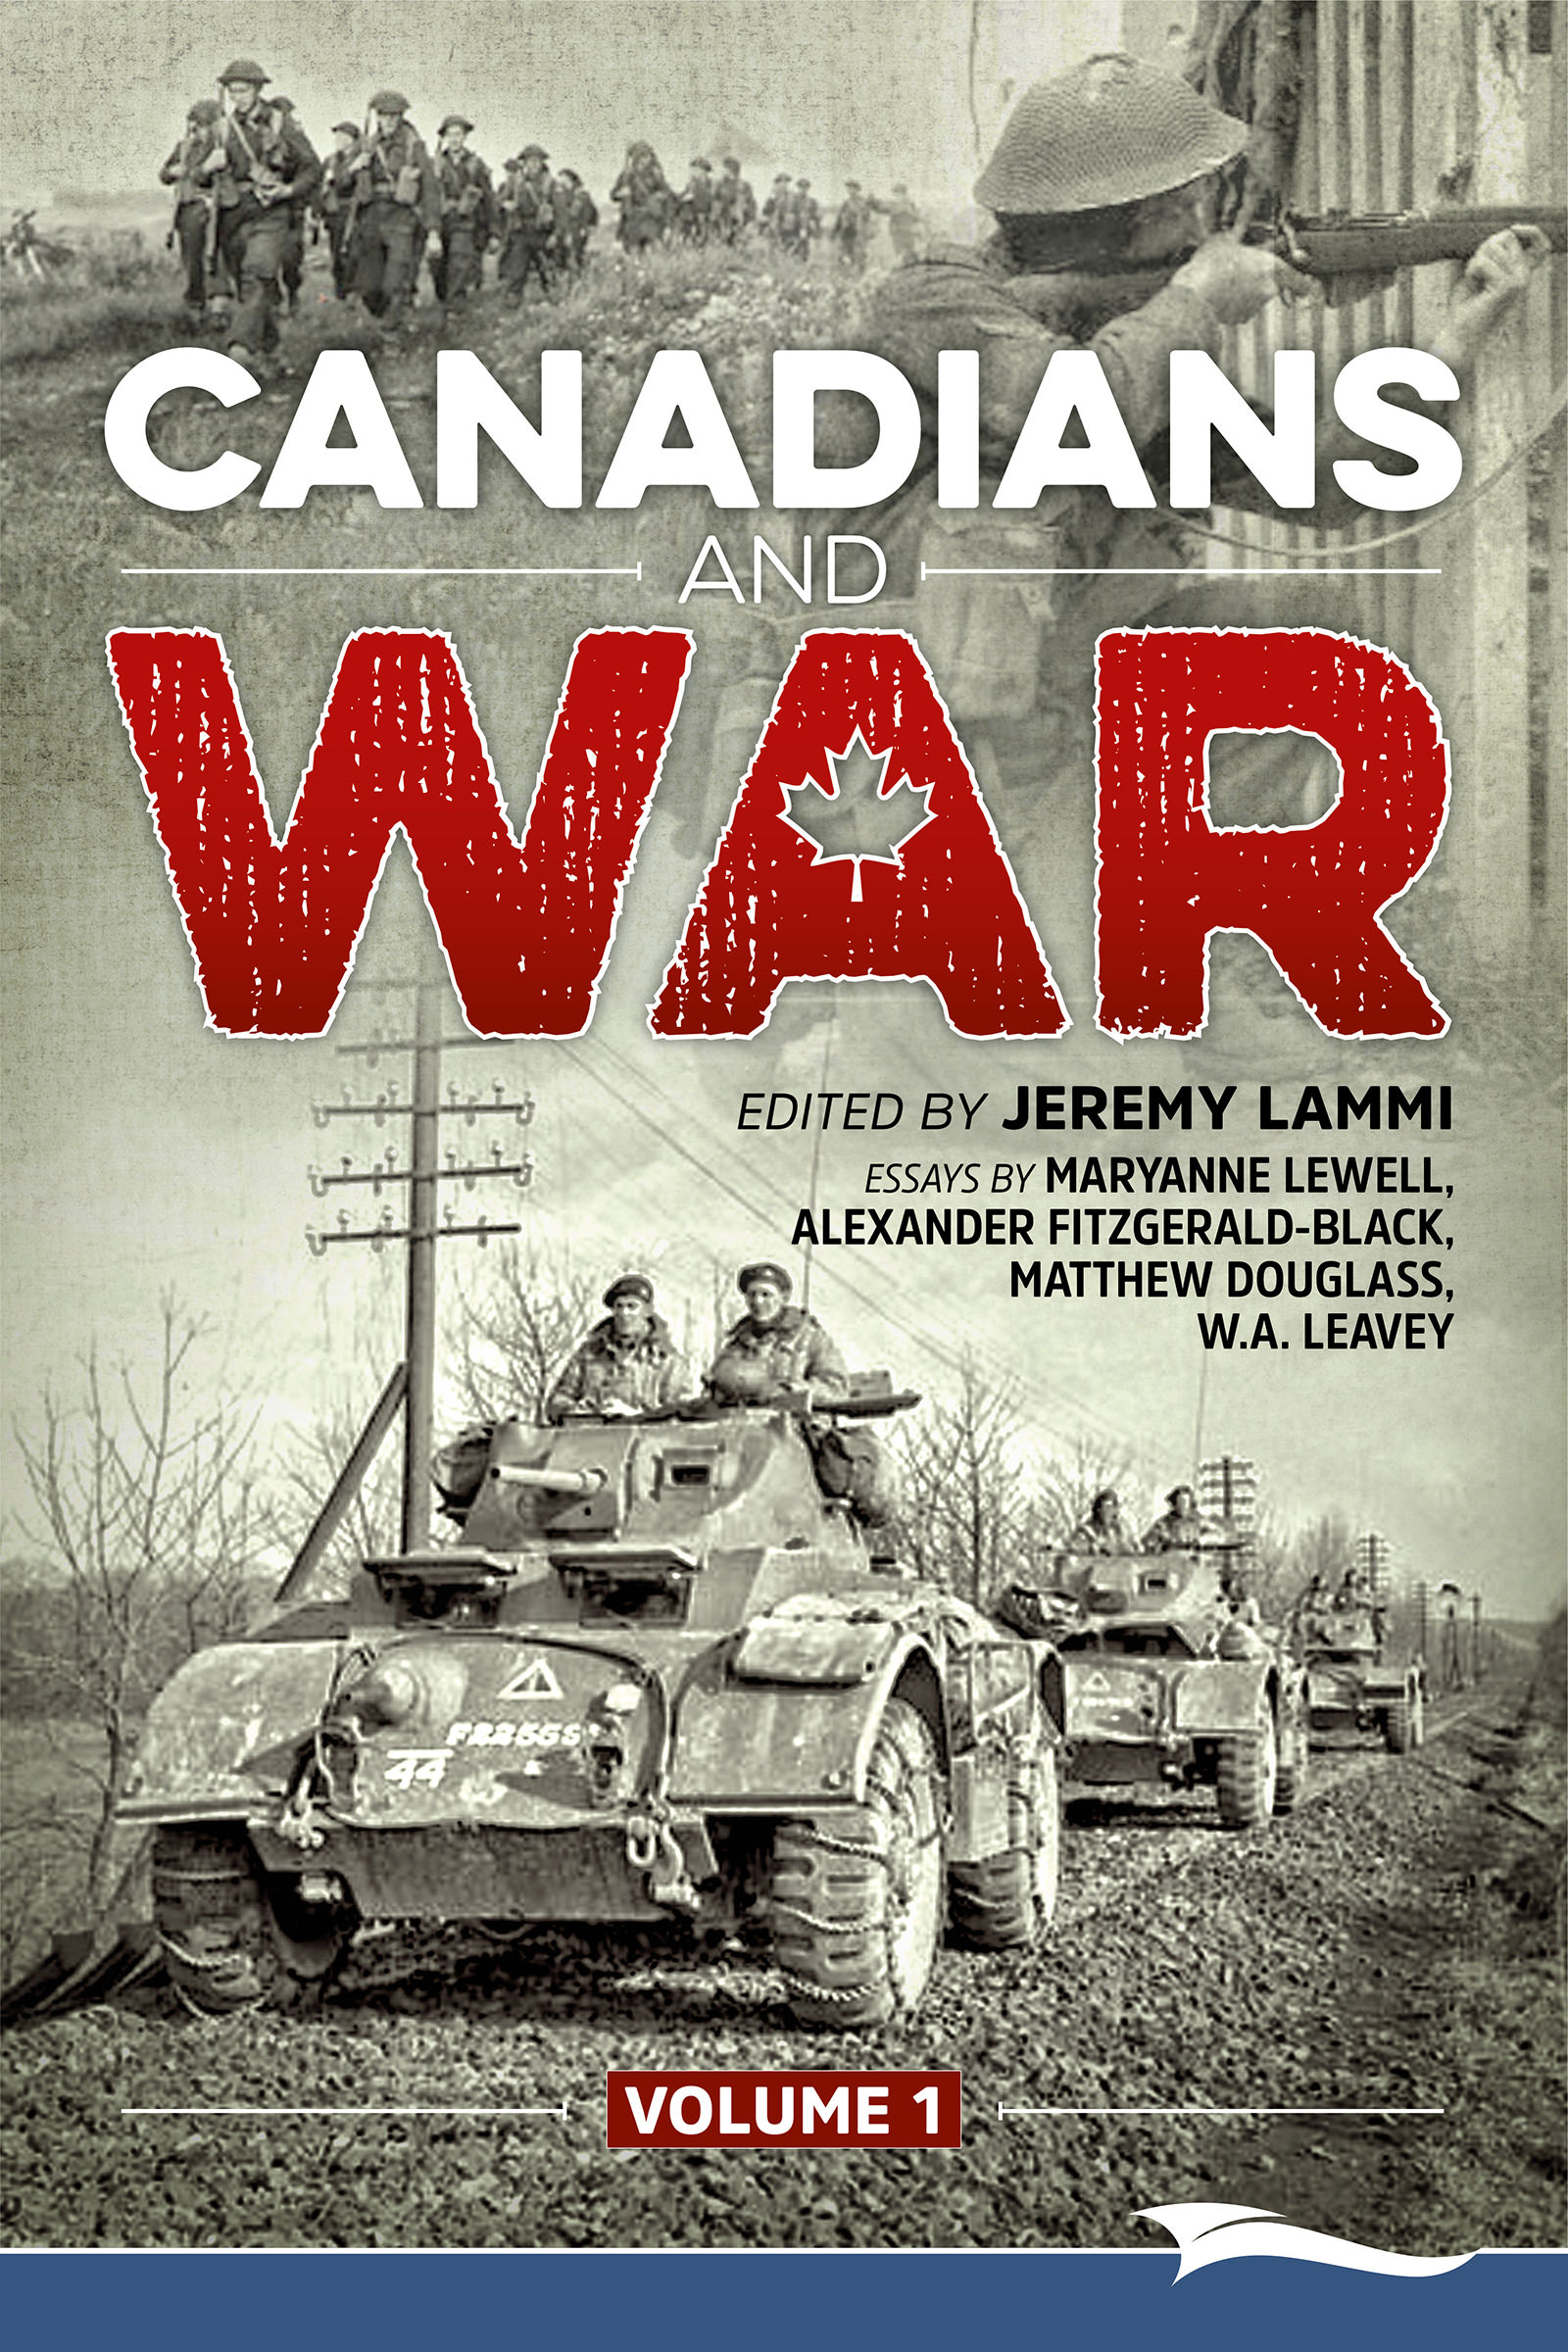 canadians and war volume 2 vimy ridge lammi publishing inc canadians and war volume 1